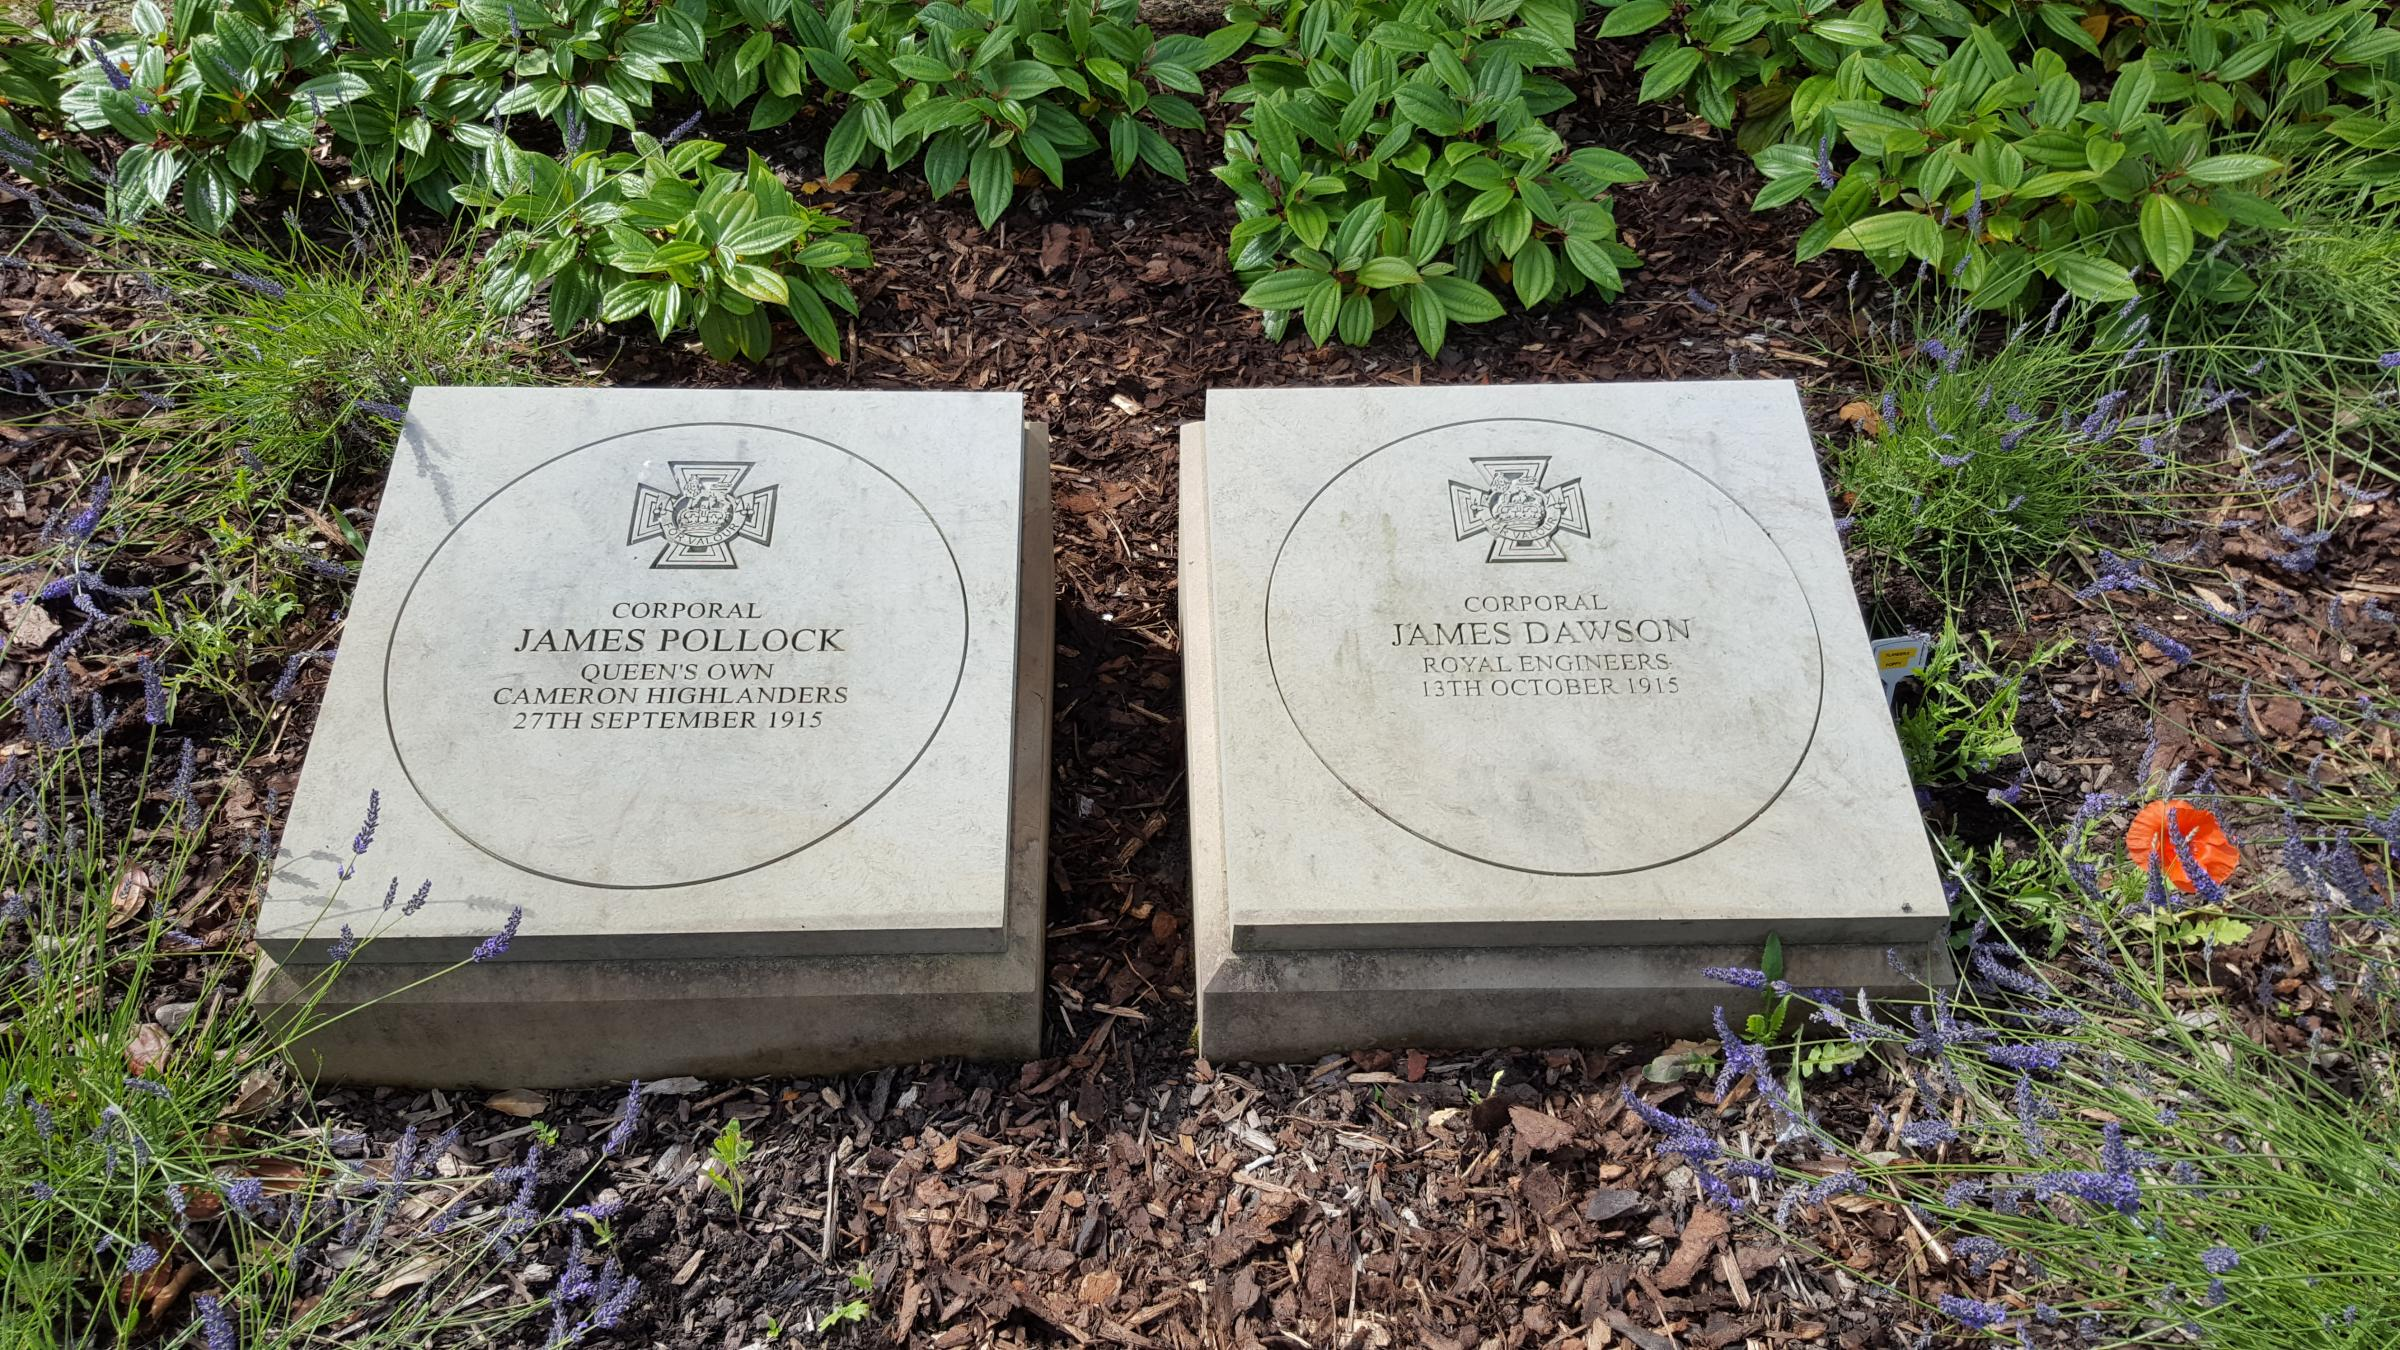 FITTING TRIBUTE: The memorial to cousins James Pollock and James Dawson in Tillicoultry